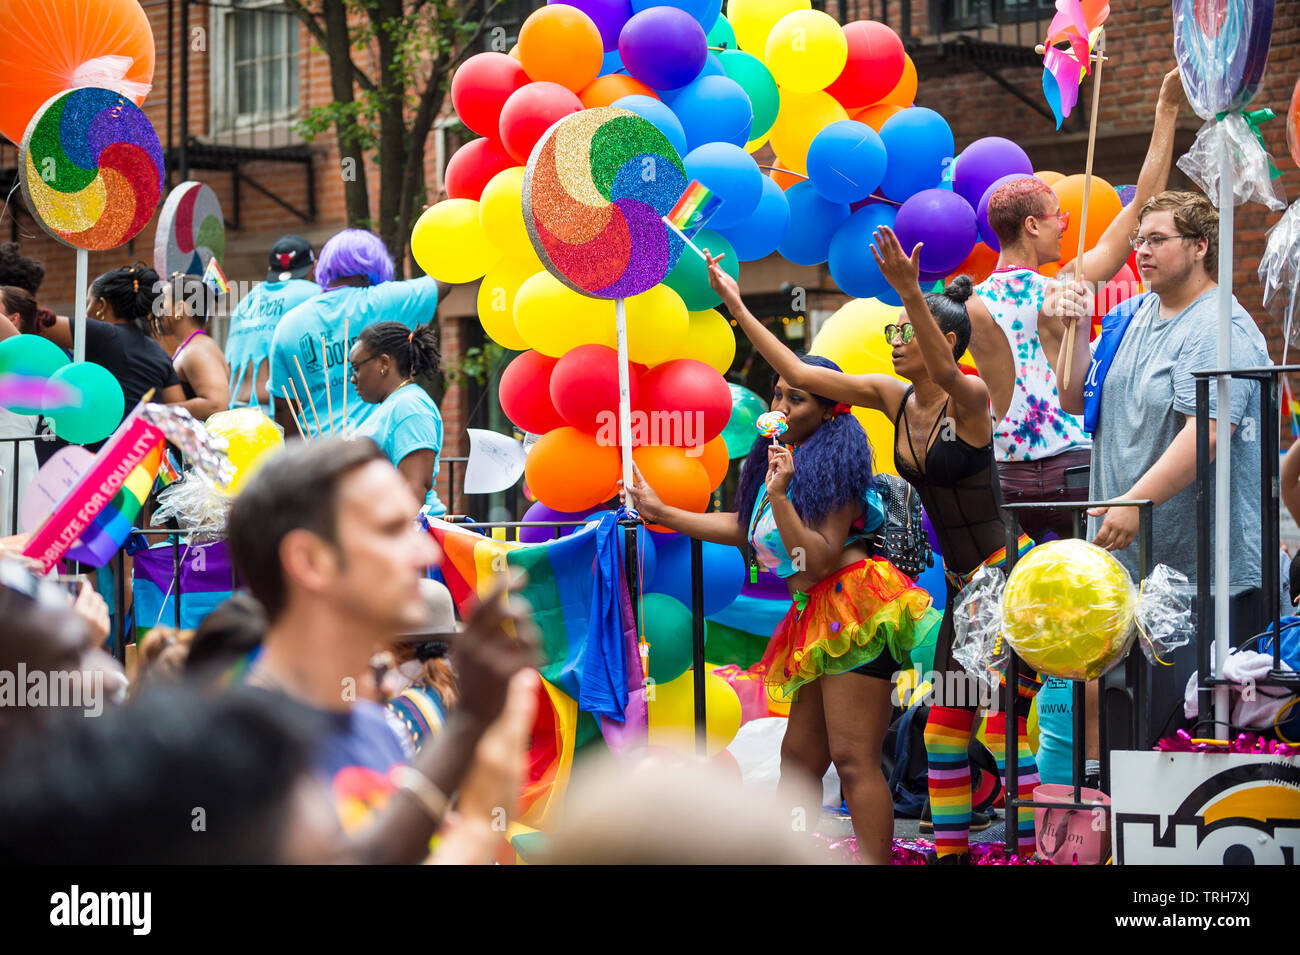 NEW YORK CITY - JUNE 25, 2017: Participants wave rainbow flags on a colorful float decorated with balloons in the annual Pride Parade in the Village. - Stock Image